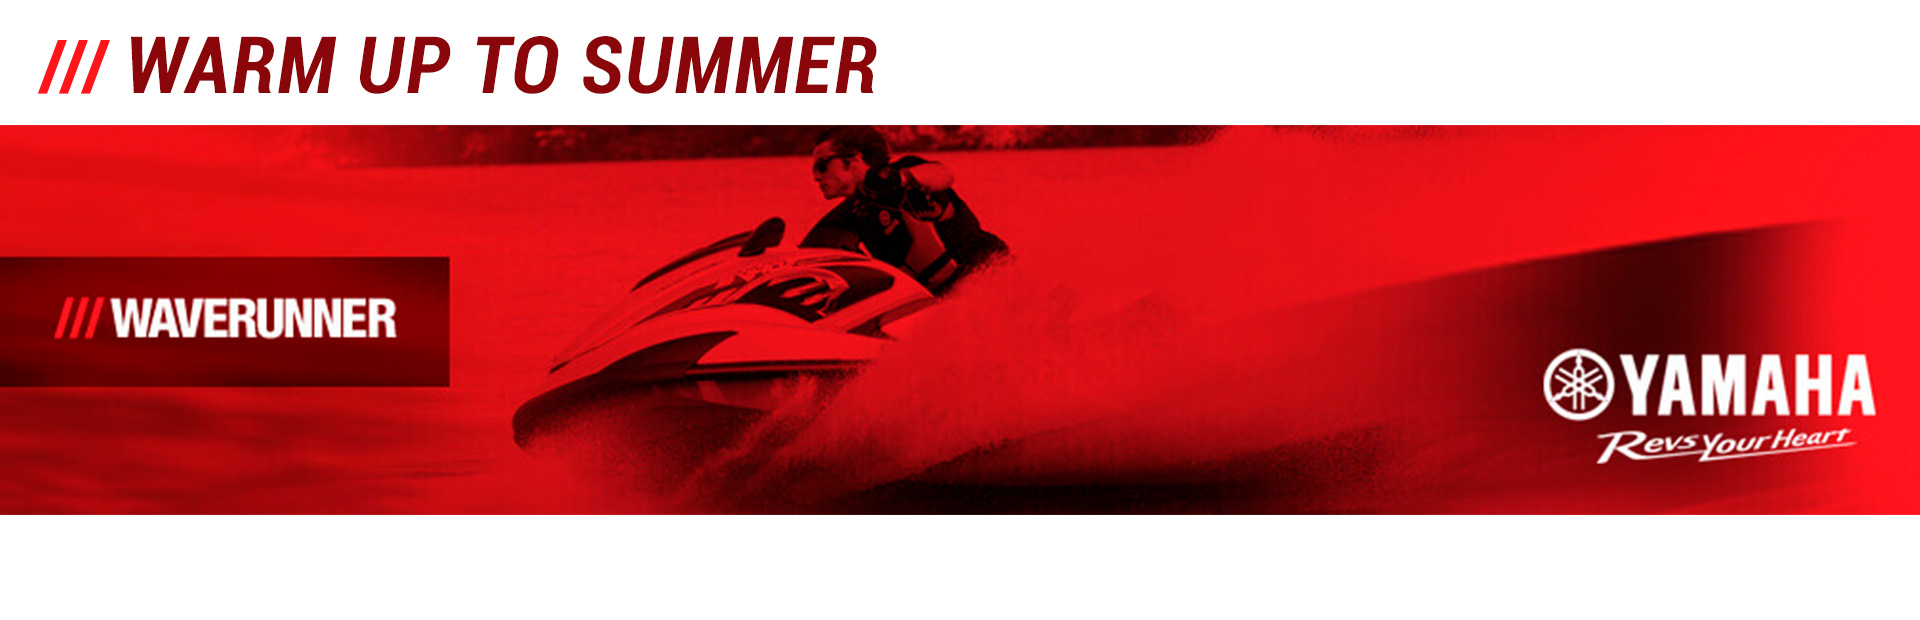 Yamaha: Warm Up To Summer - Waverunner